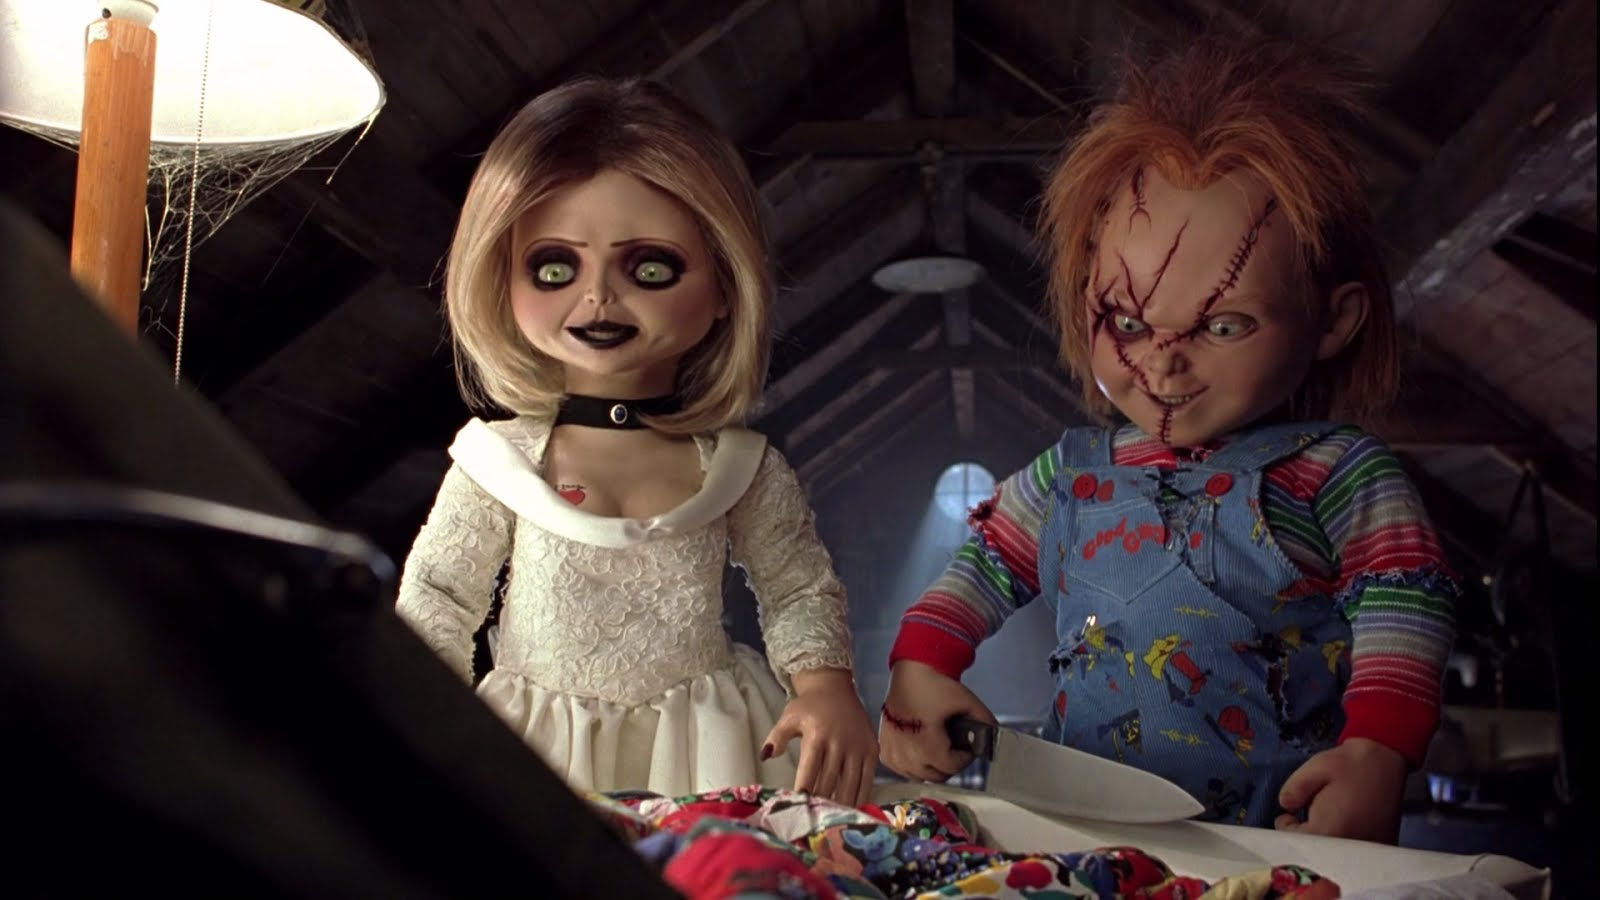 3. Seed of Chucky (2004)